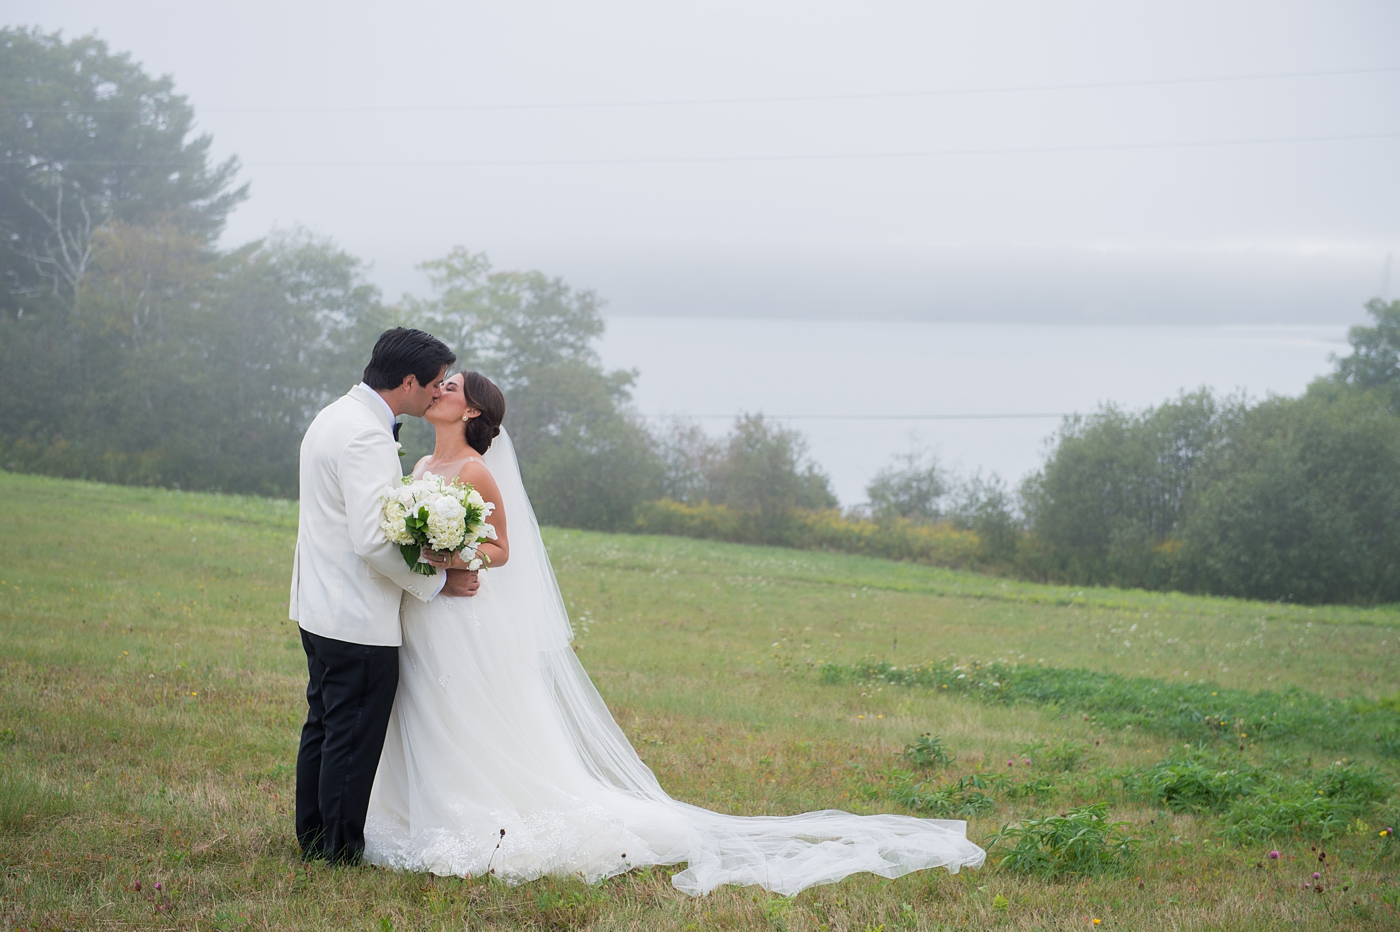 waldoboro maine wedding downeast maine wedding photographed by brea mcdonald photography